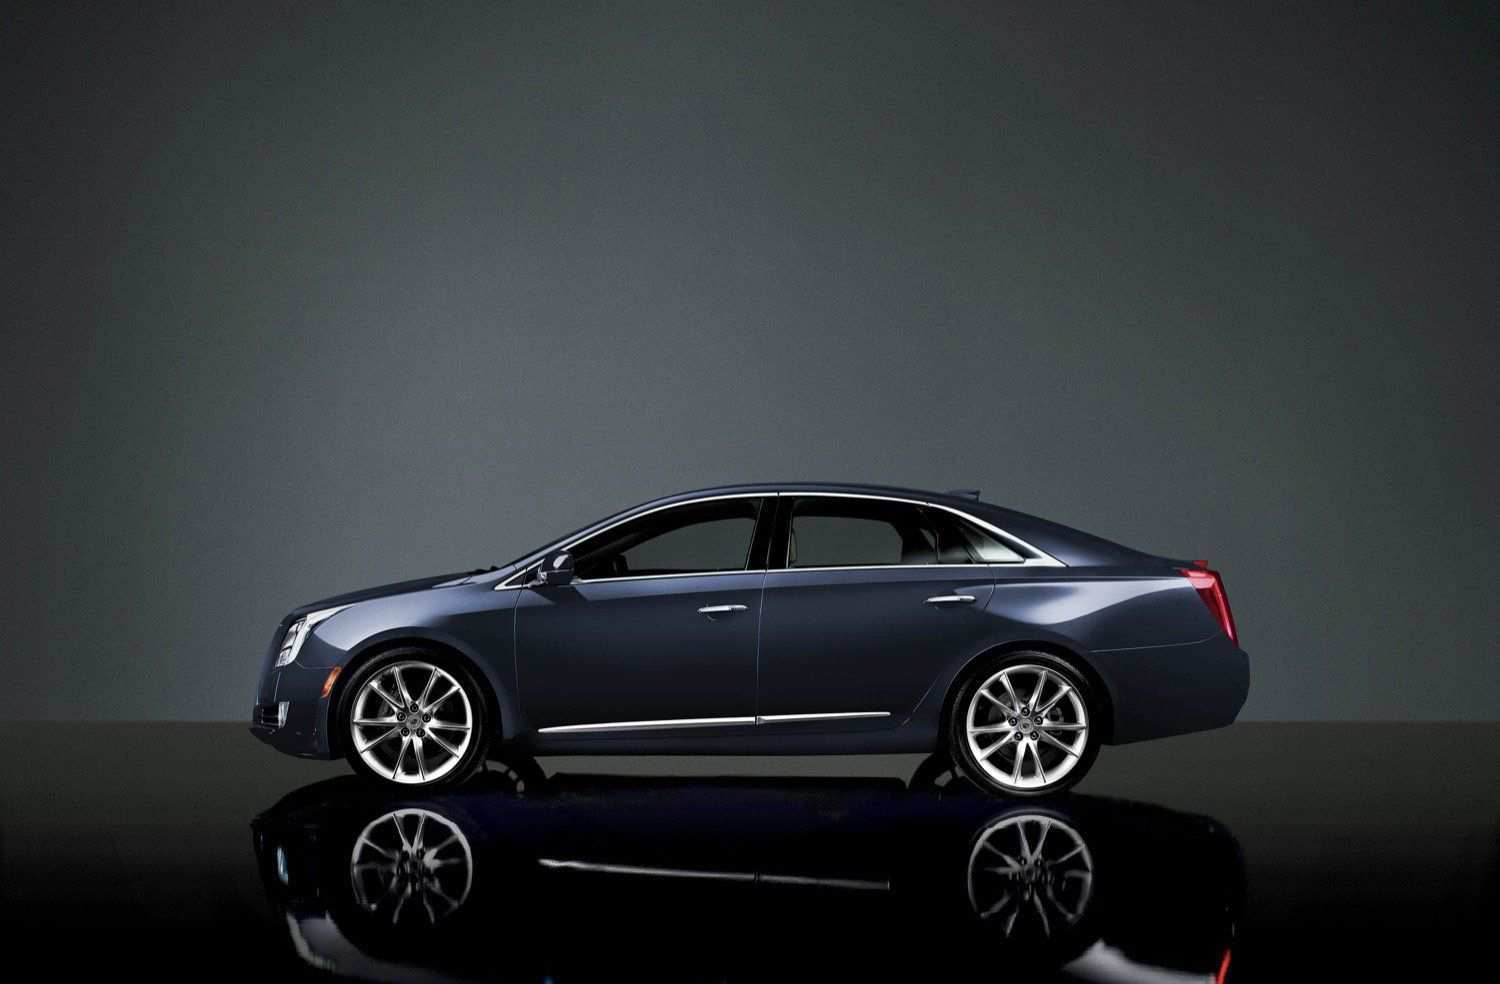 21 All New 2020 Cadillac Xts Premium Redesign